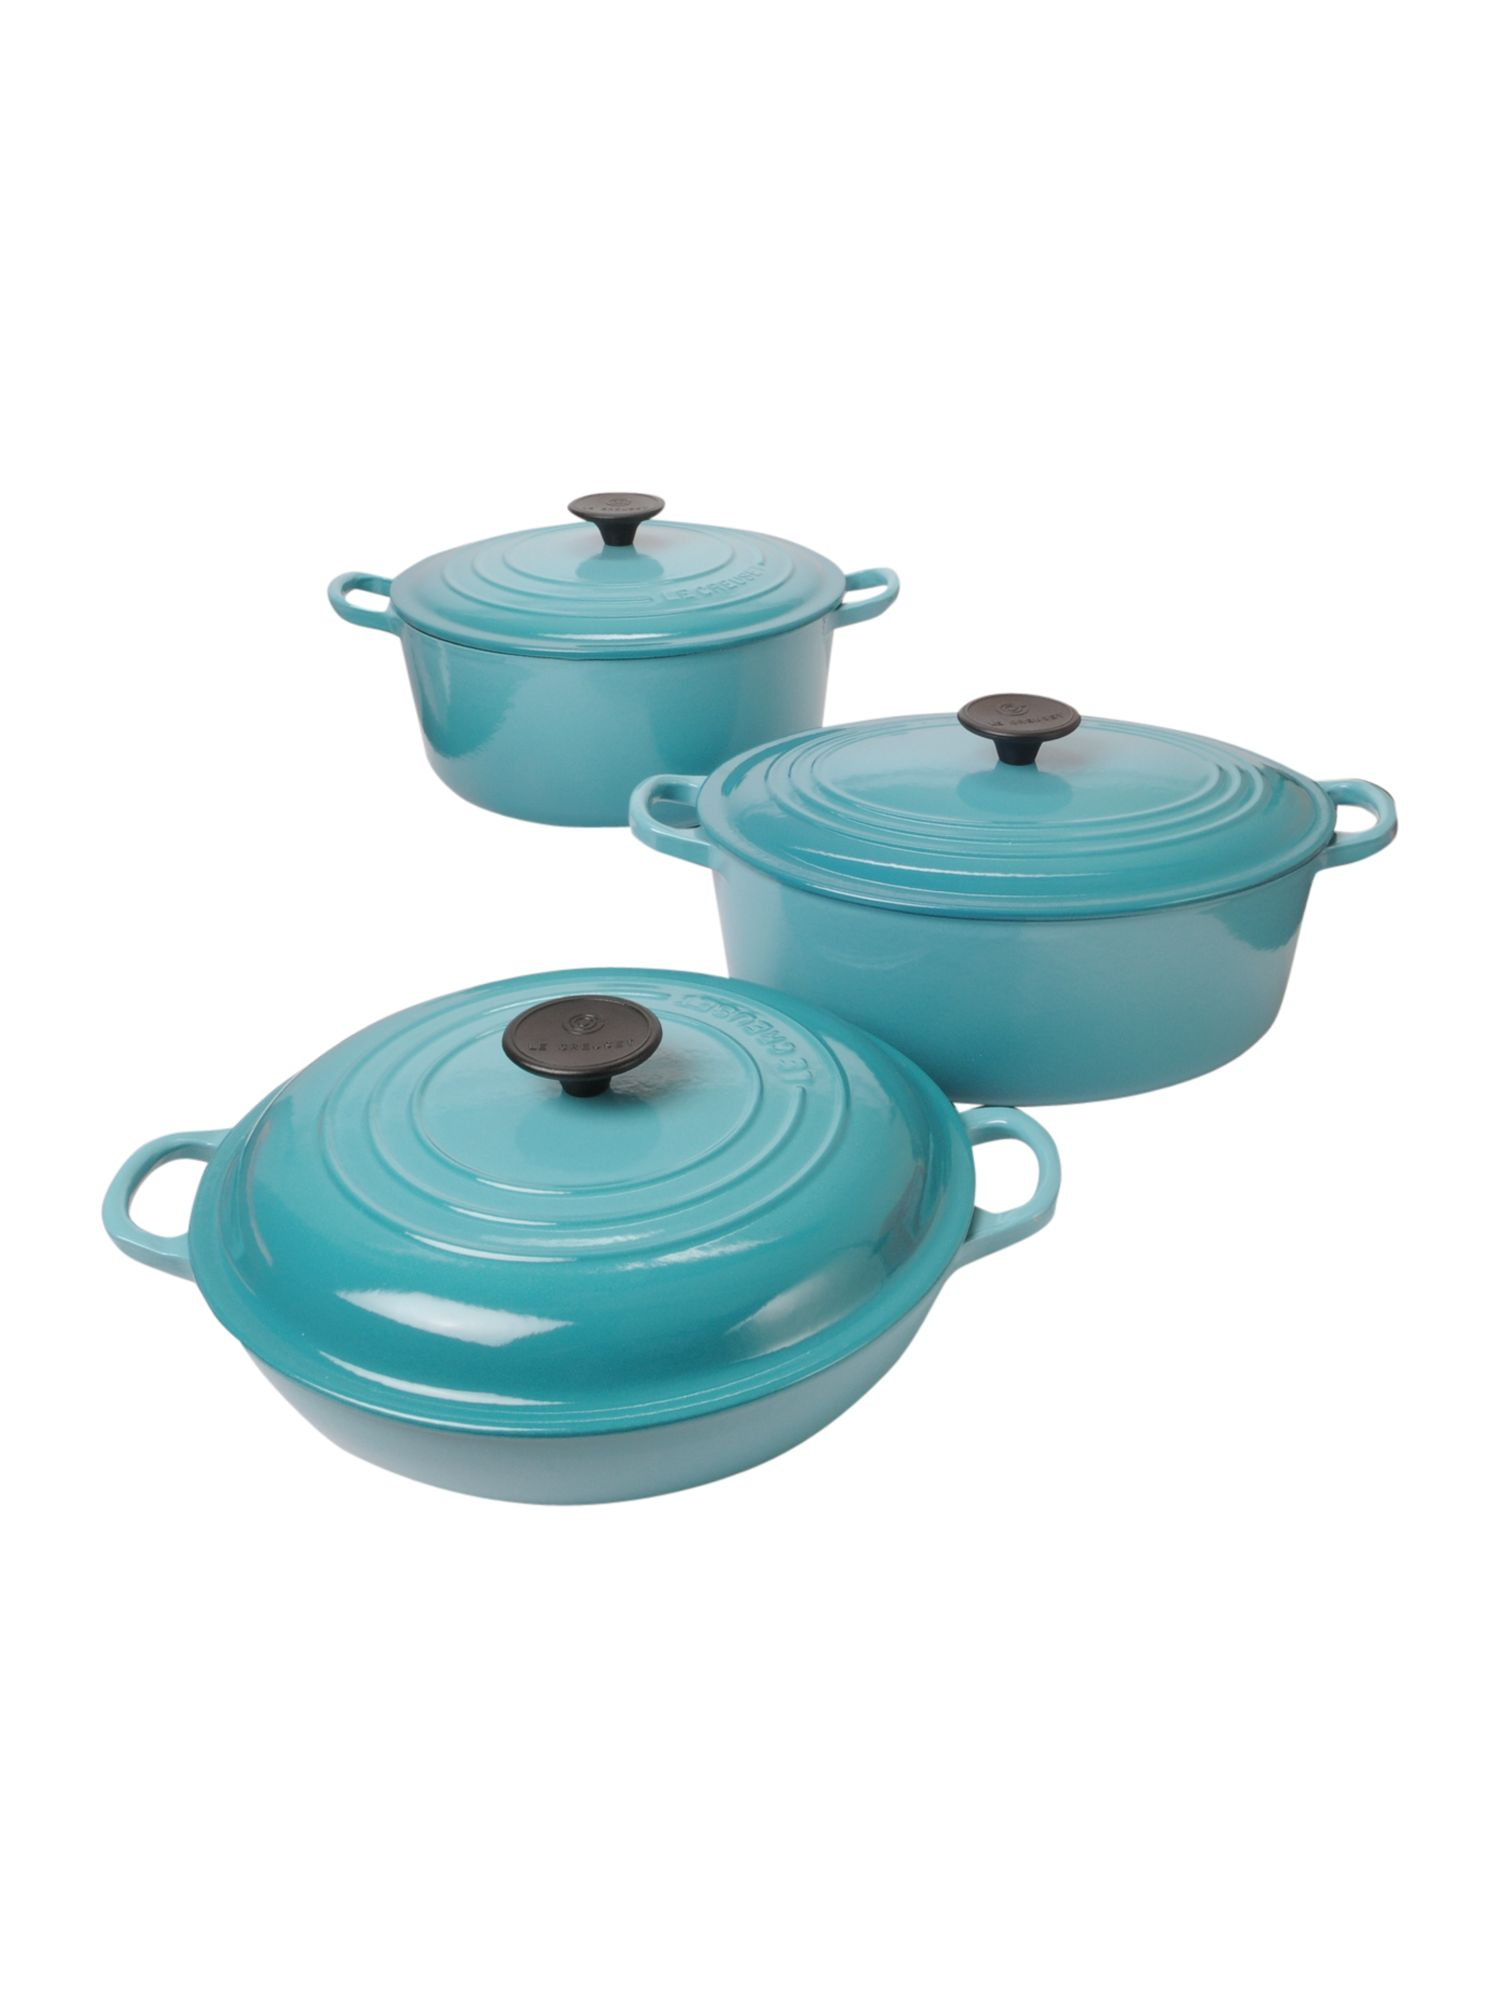 Cat Iron cookware in Teal